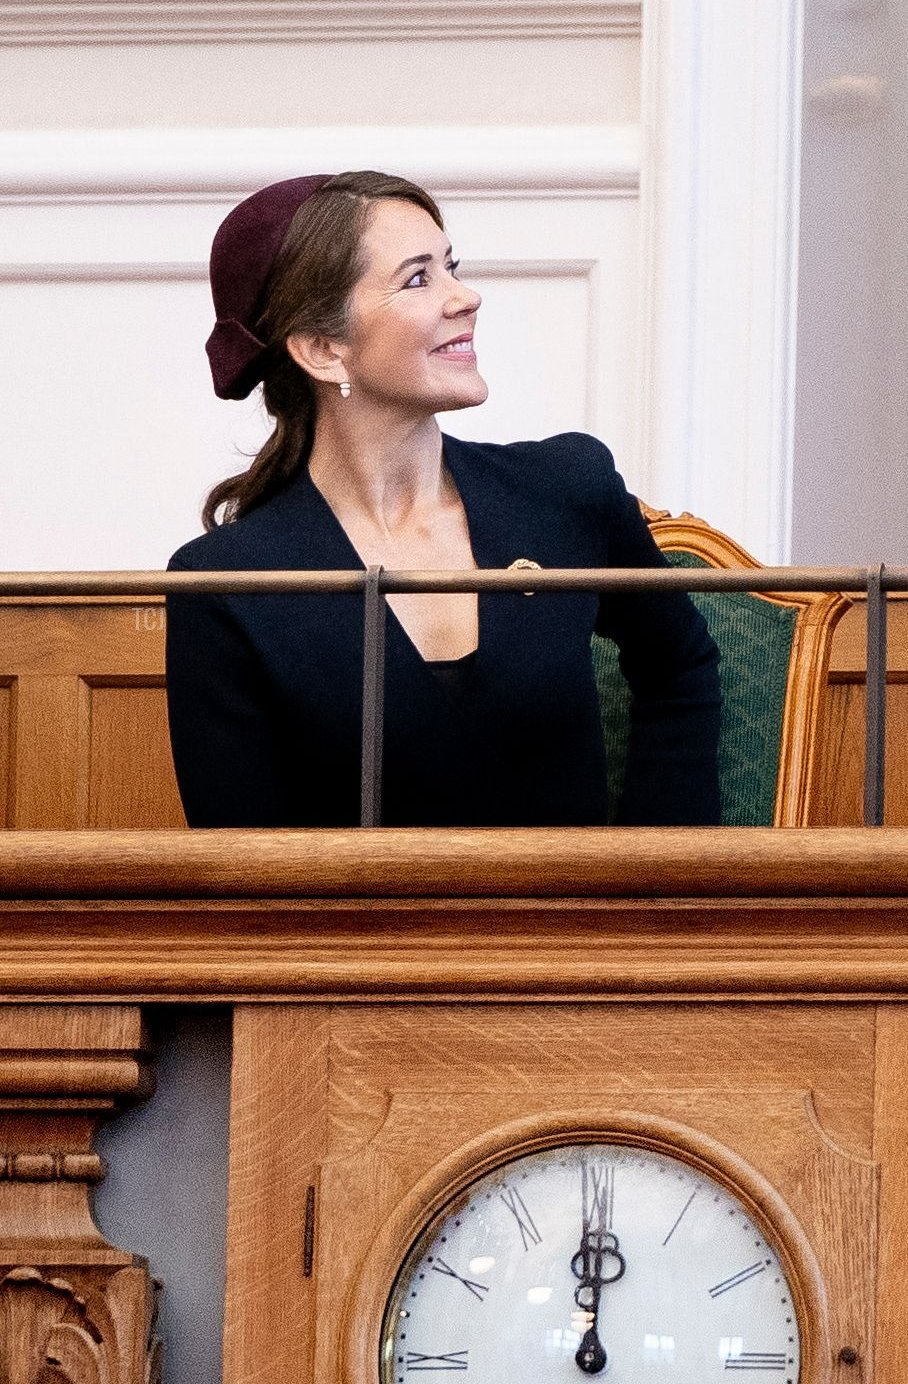 Crown Princess Mary of Denmark during the opening of the Danish Parliament Folketinget in Copenhagen, Denmark, on October 5, 2021